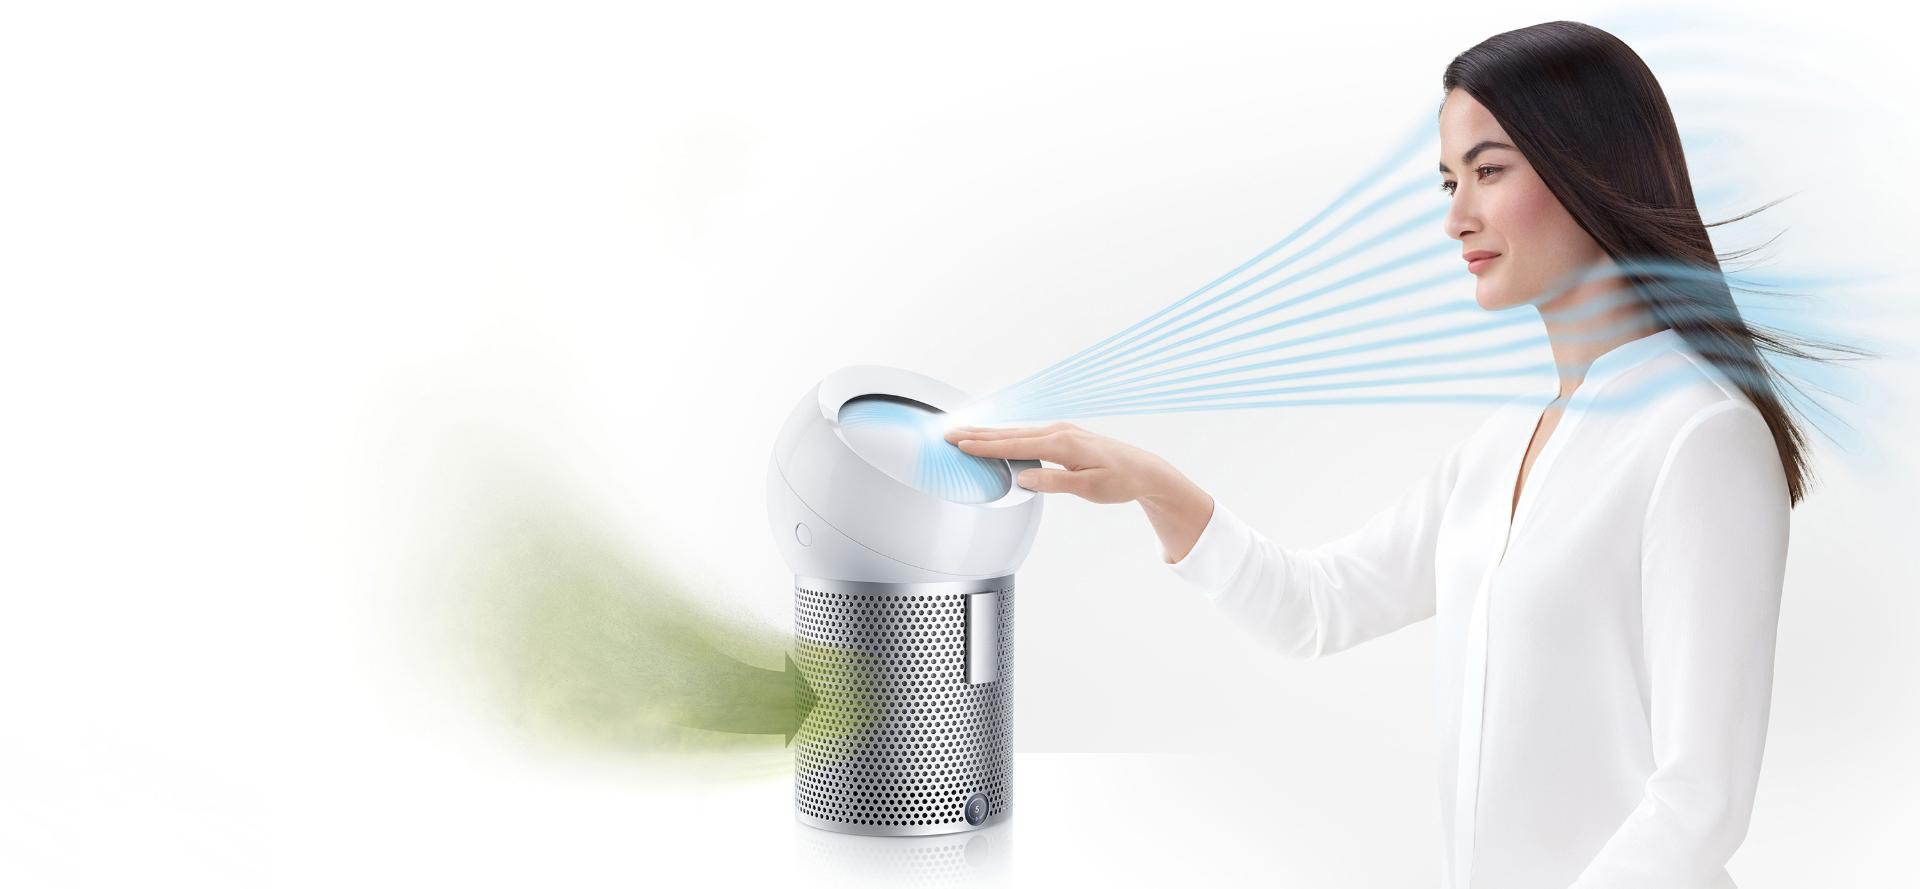 A woman using the Dyson Pure Cool Me personal purifier fan to project cooling, purified air